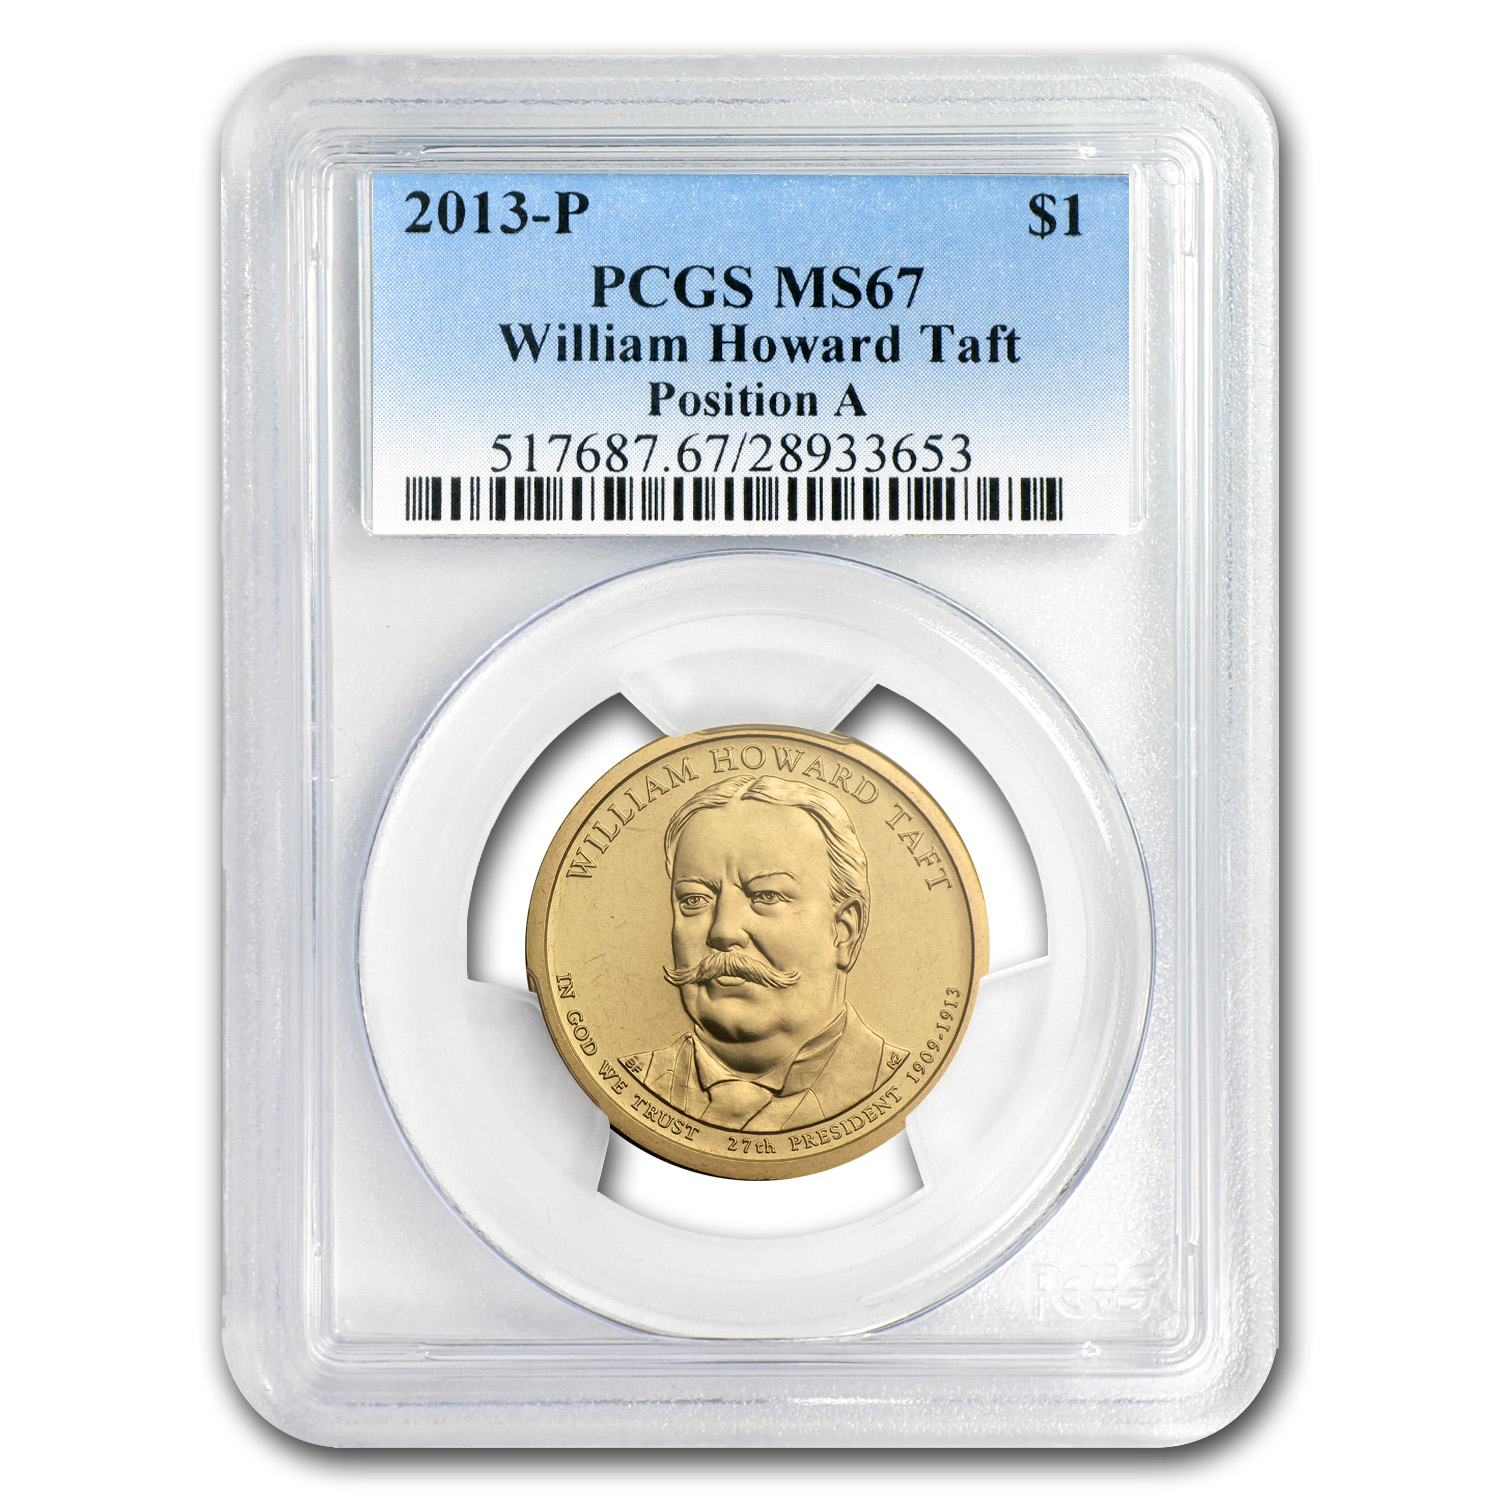 2013-P A Position William H. Taft Presidential Dollar MS-67 PCGS